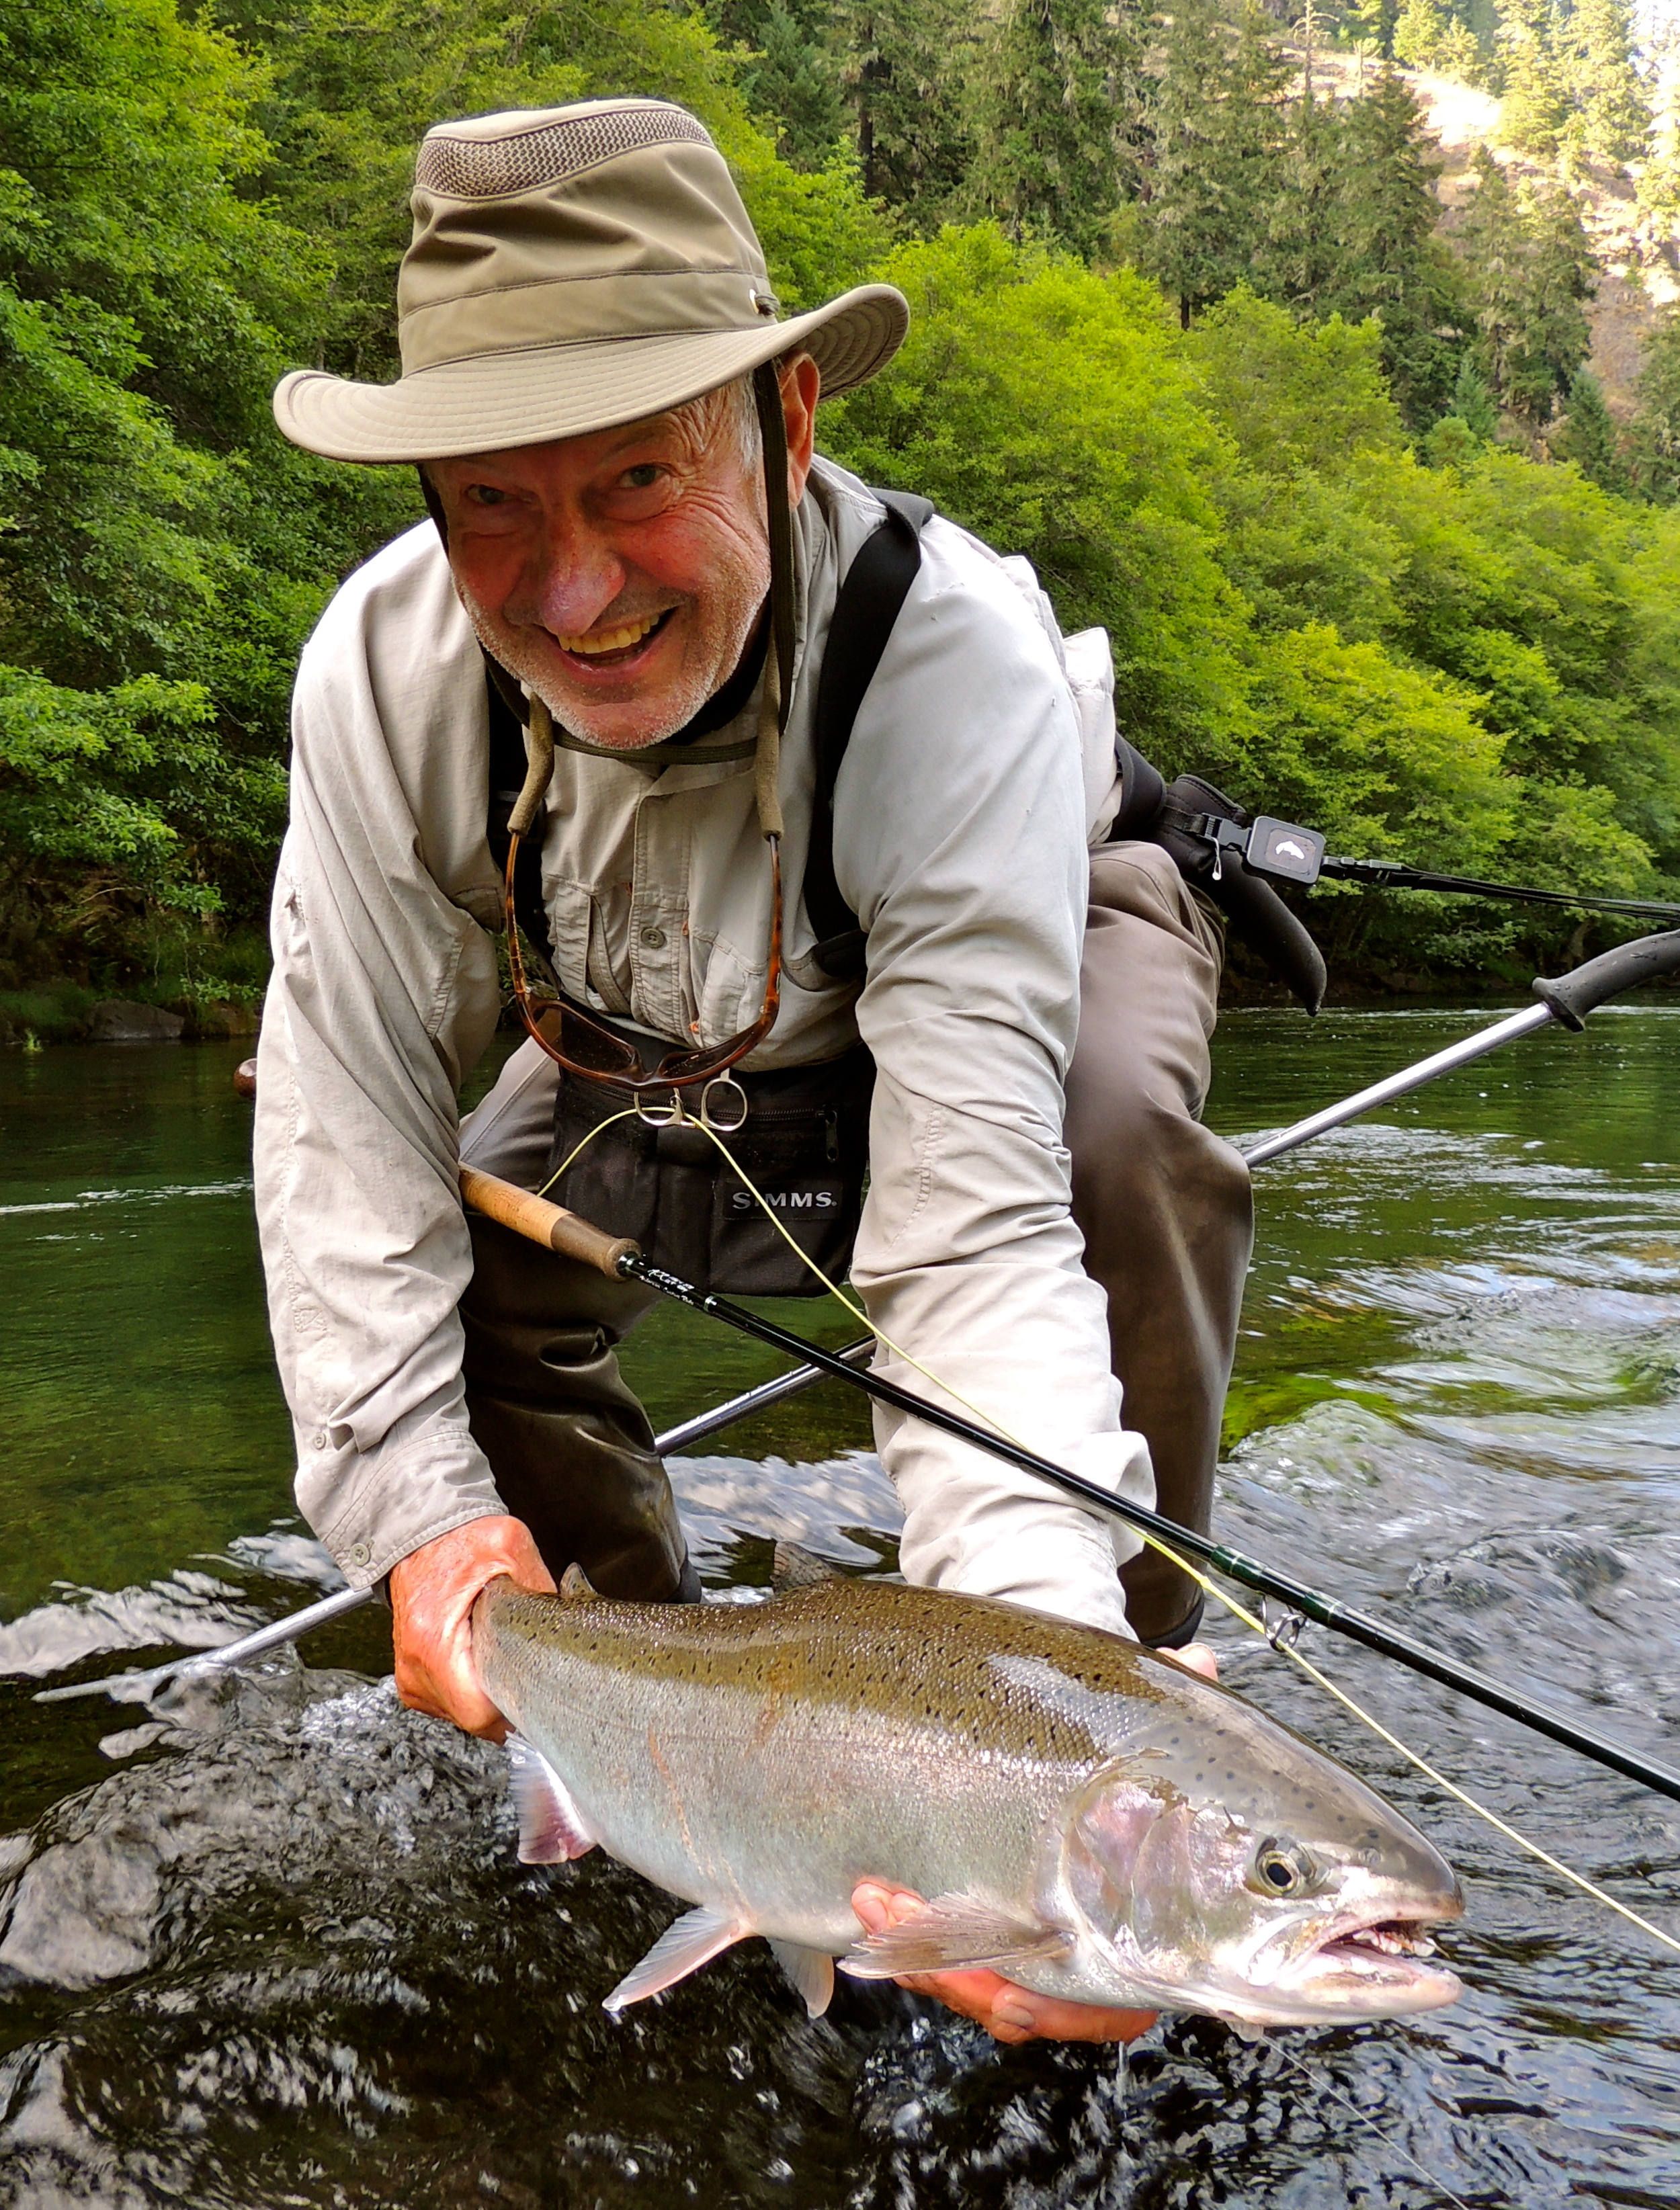 Fred Pendergast with a nice, bright beauty.